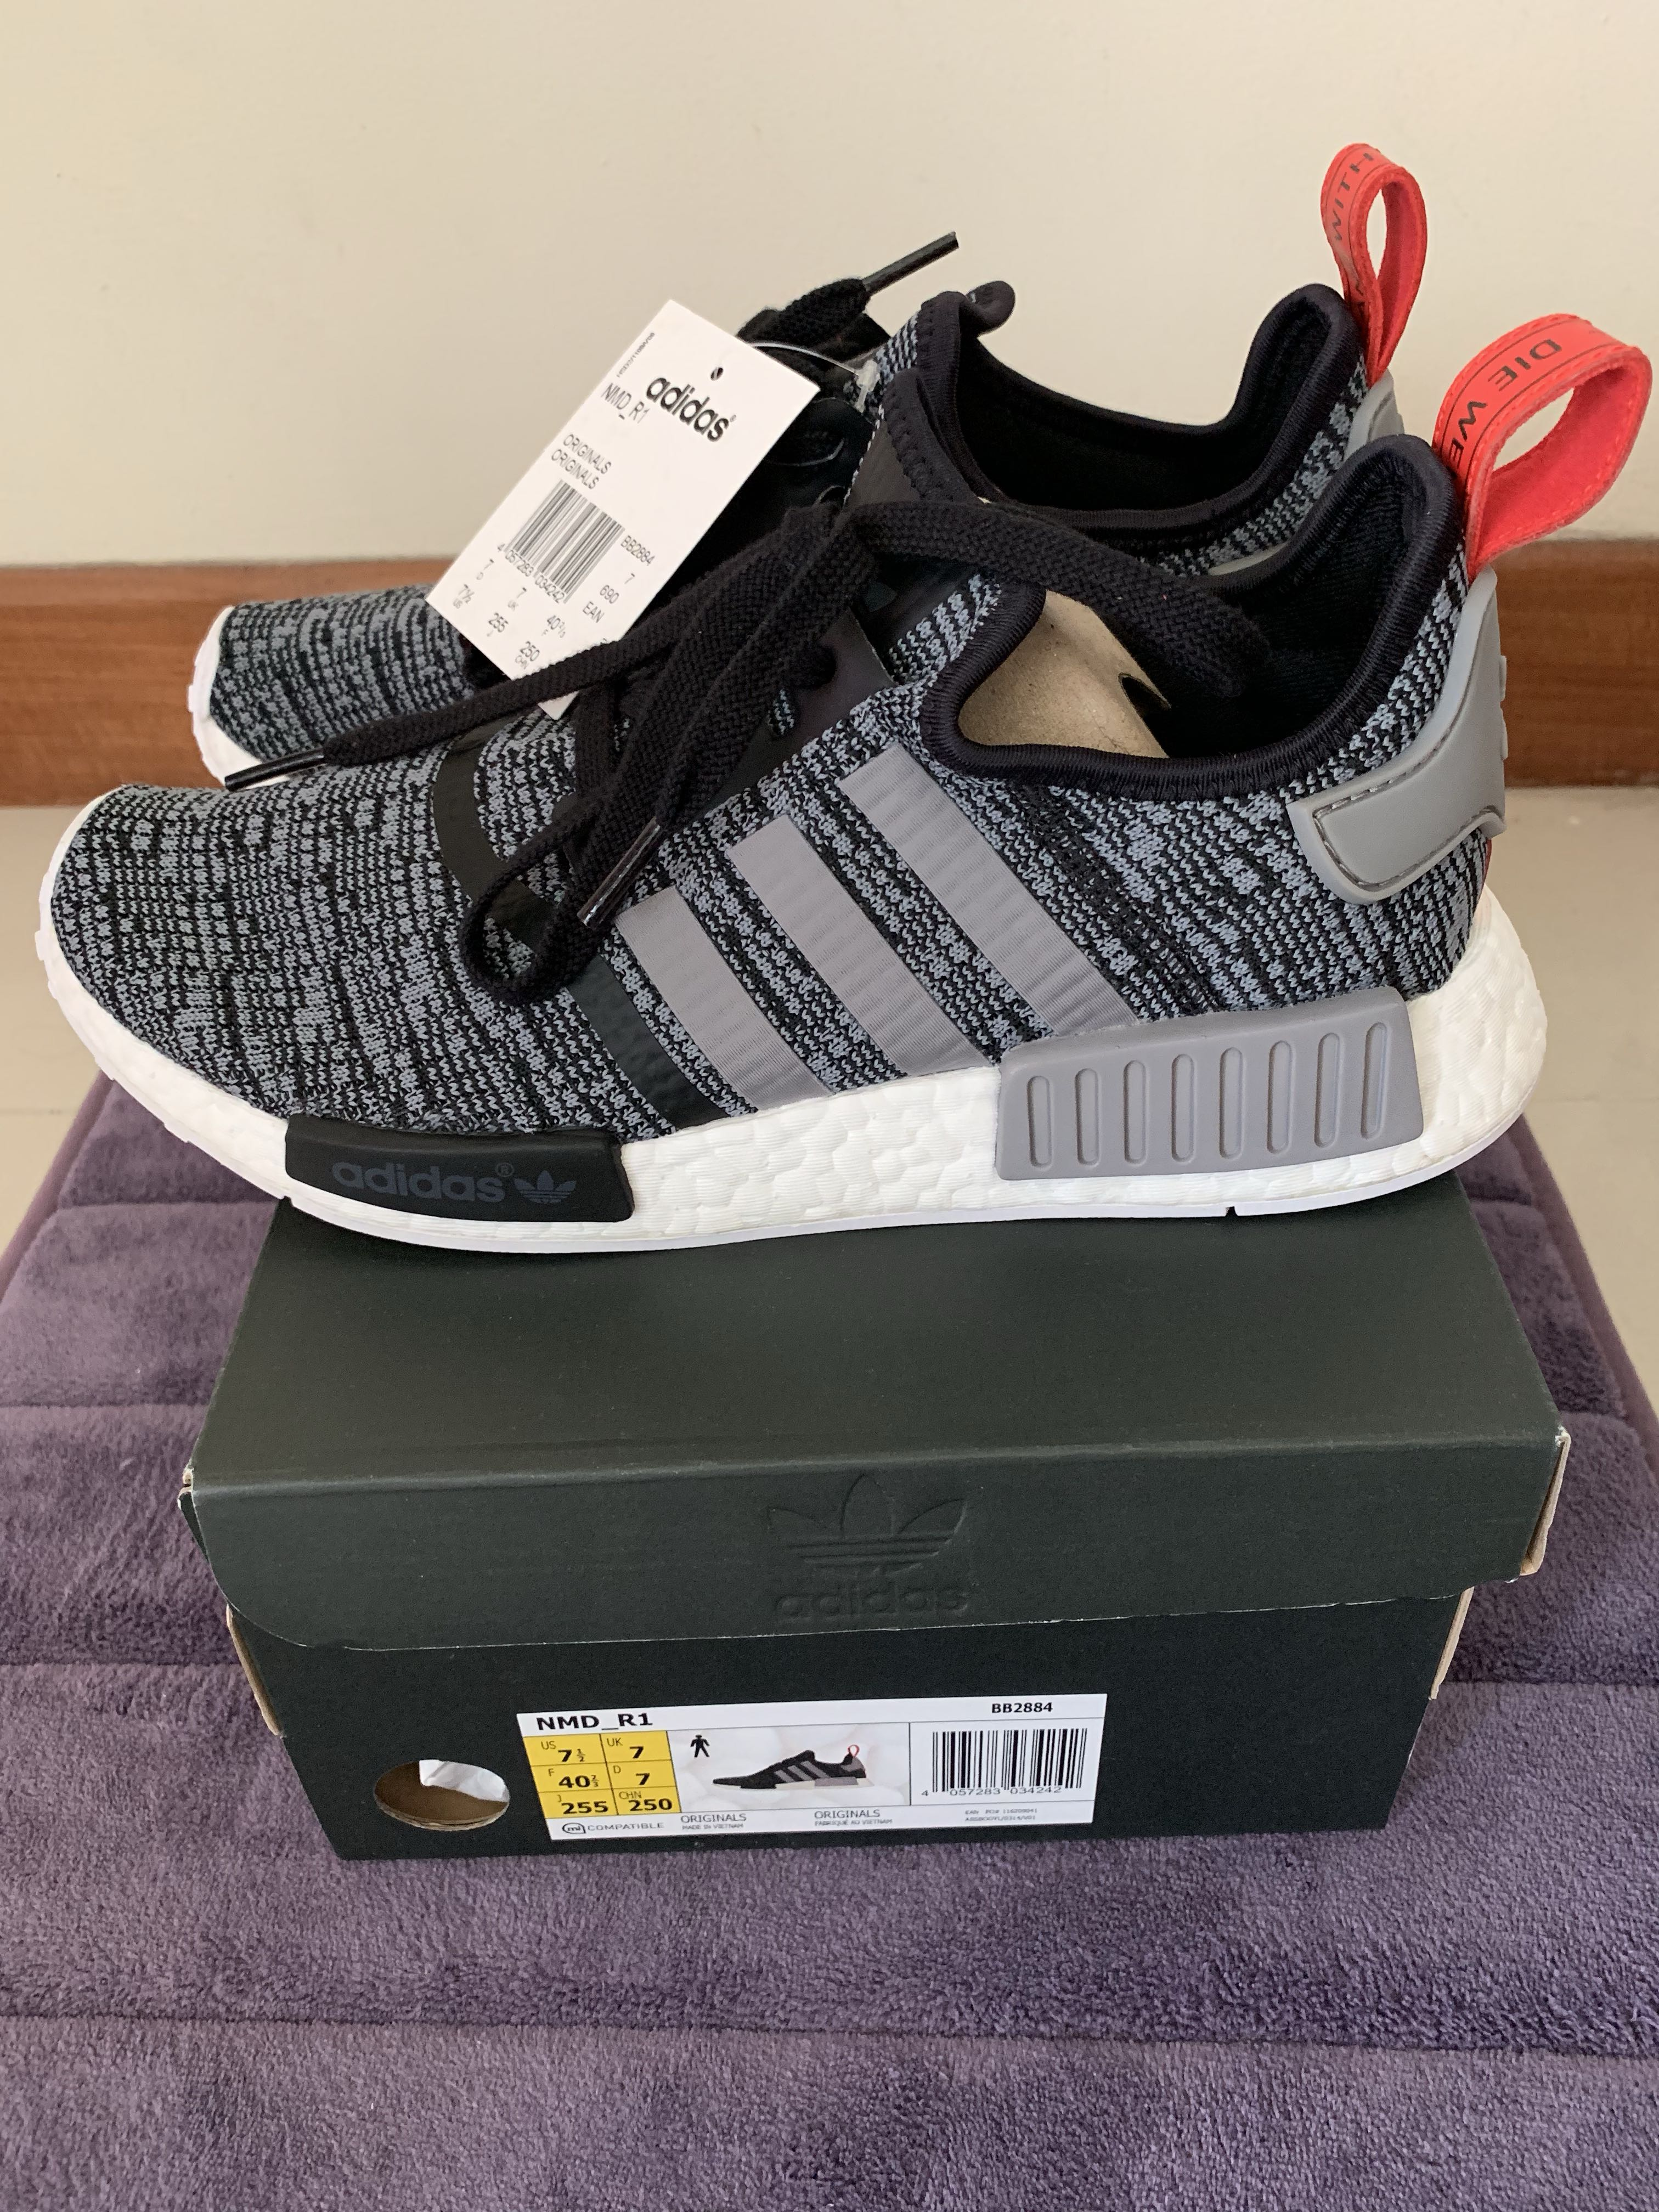 a862a45a78d70 BNIB Authentic Adidas NMD R1